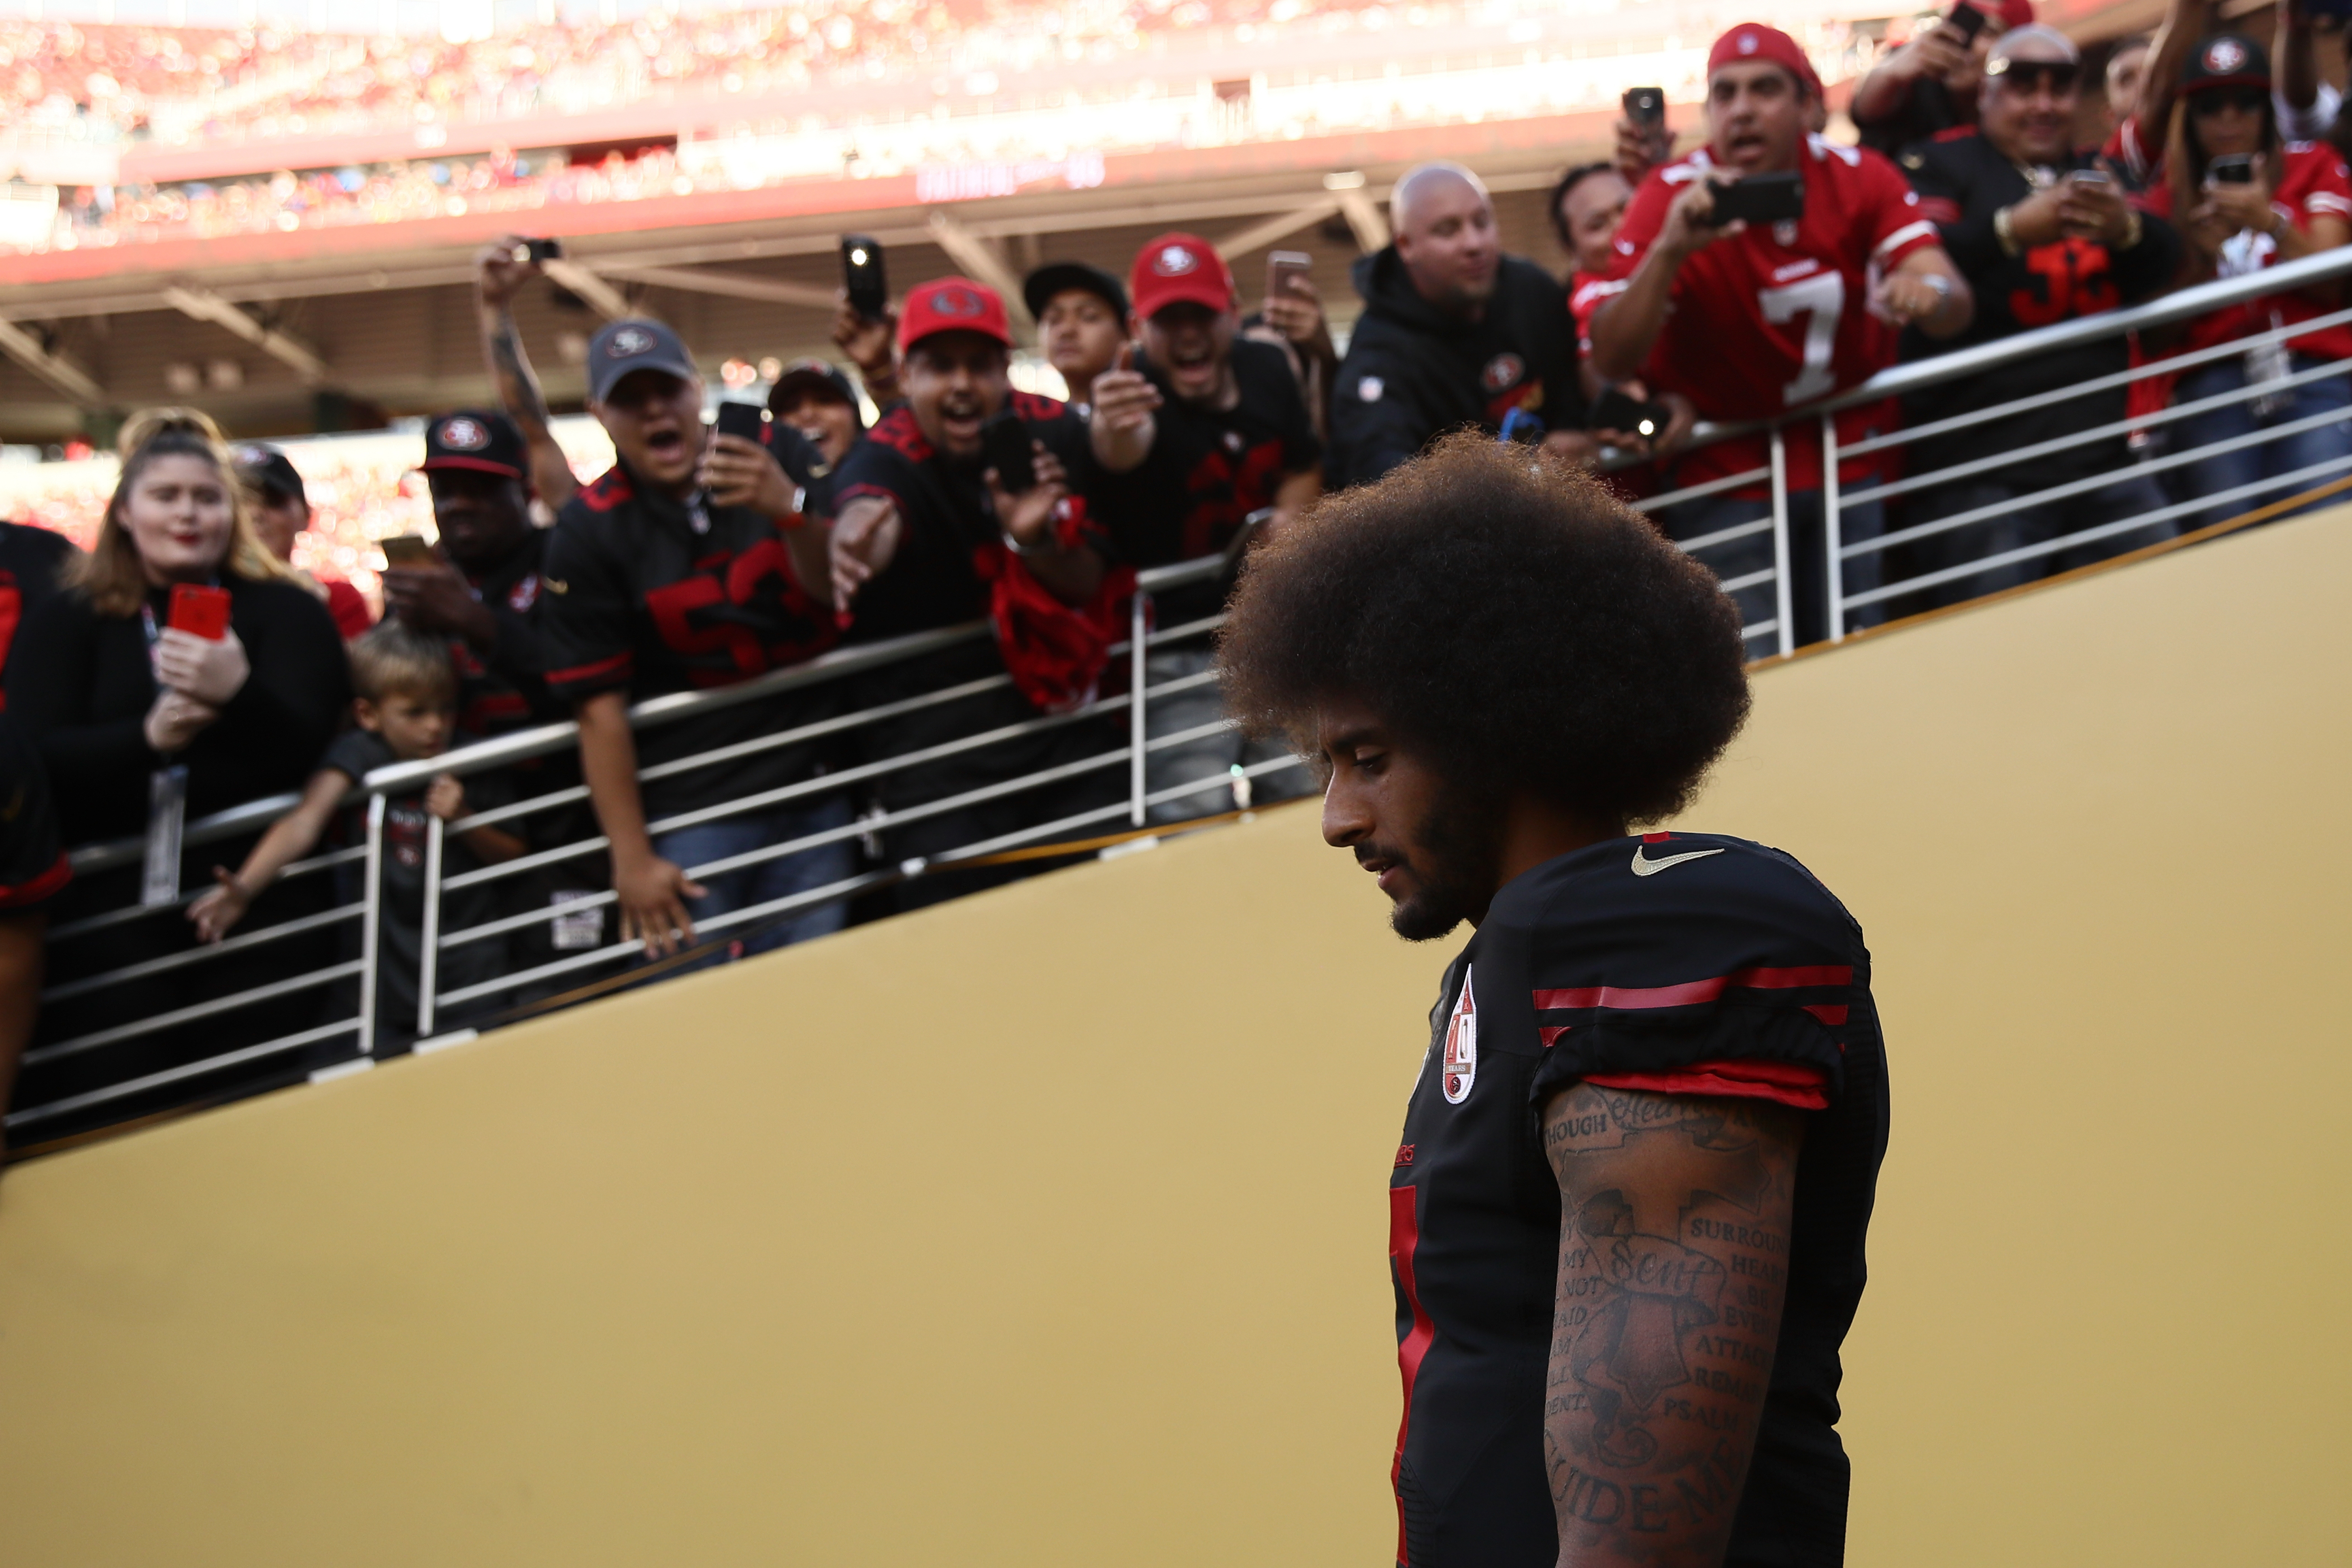 Fans have not always been open to listening to Colin Kaepernicks message about social injustice, but his protests during the national anthem have prompted a national conversation.   (Getty Images)